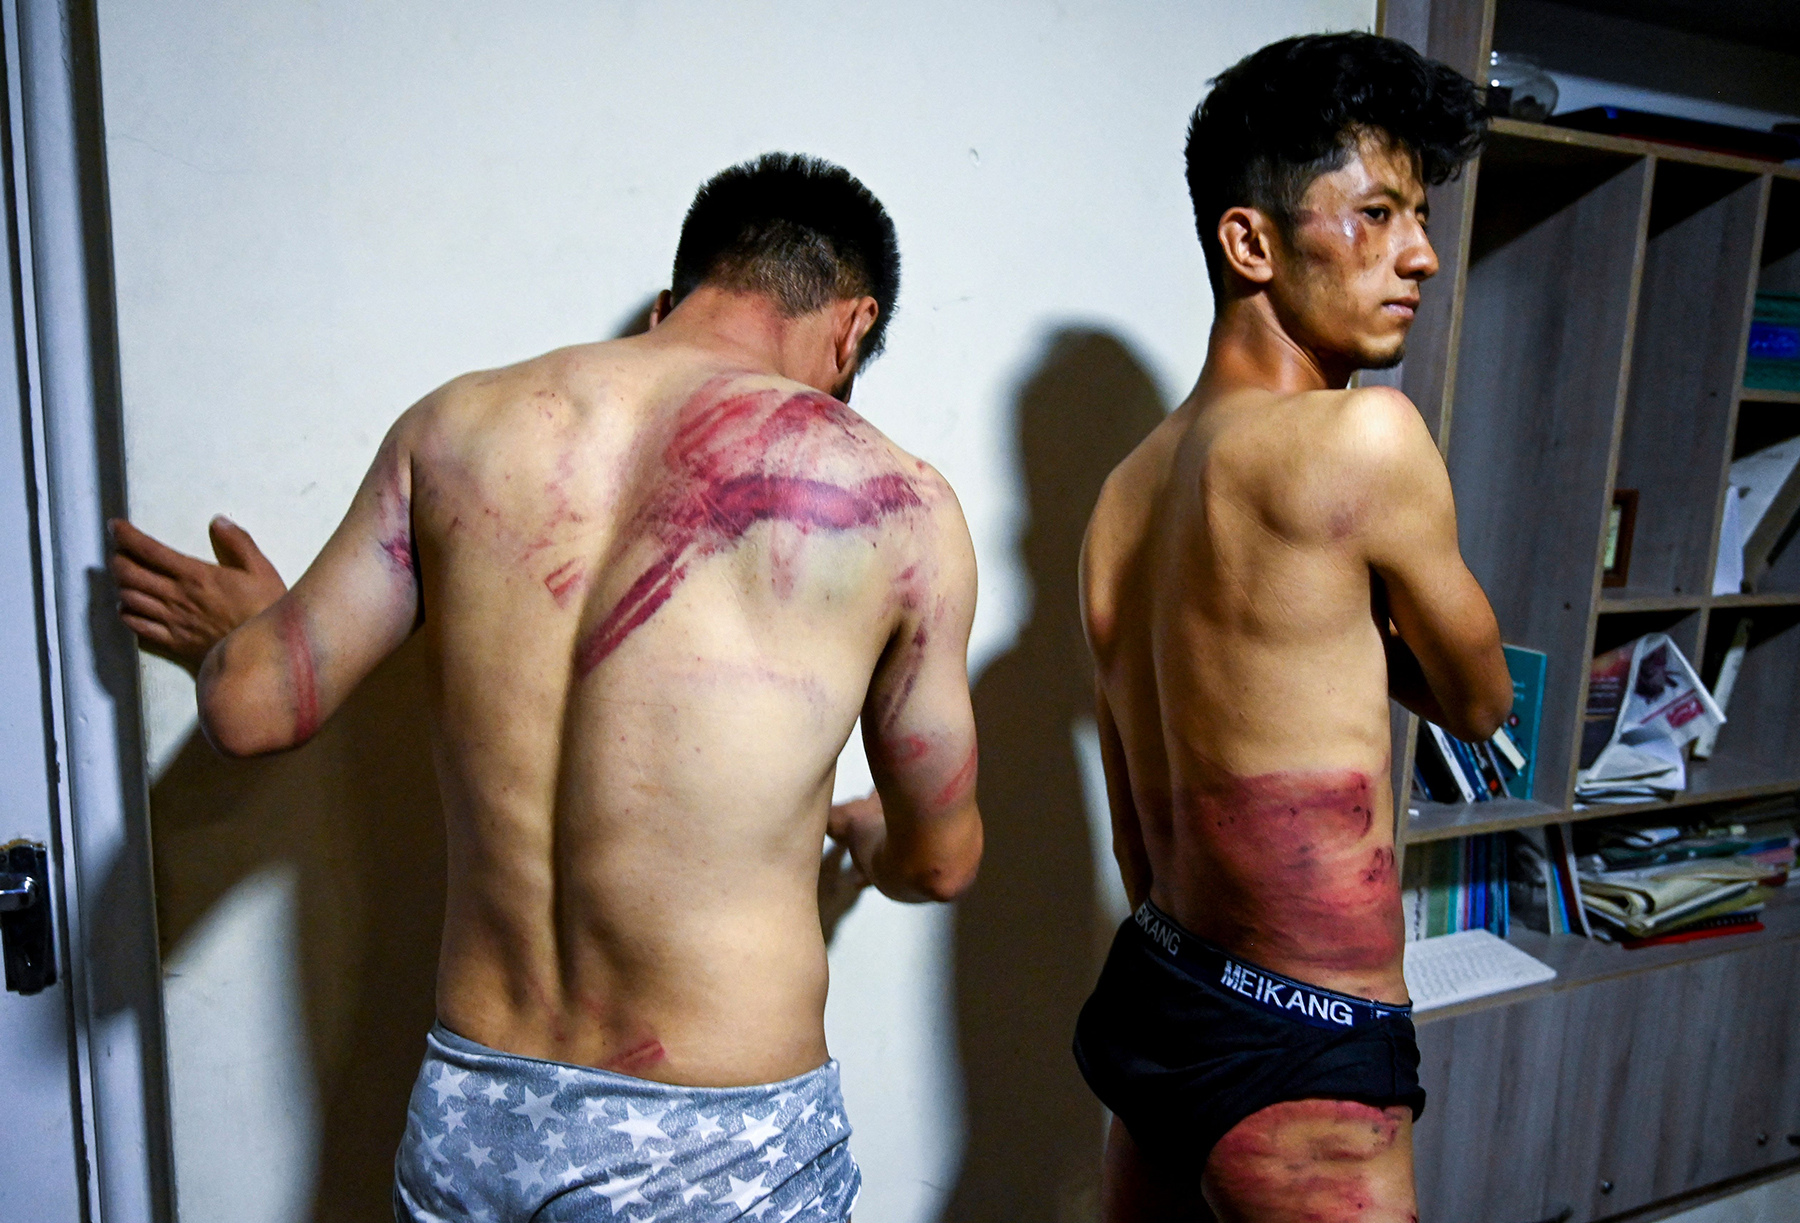 In this picture taken on September 8, 2021, Afghan newspaper Etilaat Roz journalists Nematullah Naqdi (L) and Taqi Daryabi show their wounds in their office in Kabul after being released from Taliban custody. - Two Afghan journalists have shown off ugly welts and bruises after being beaten and detained for hours by Taliban fighters for covering a protest in the Afghan capital. - TO GO WITH, 'Afghanistan-conflict-journalists', Focus by Emmanuel Duparcq (Photo by Wakil KOHSAR / AFP) / TO GO WITH, 'Afghanistan-conflict-journalists', Focus by Emmanuel Duparcq (Photo by WAKIL KOHSAR/AFP via Getty Images)